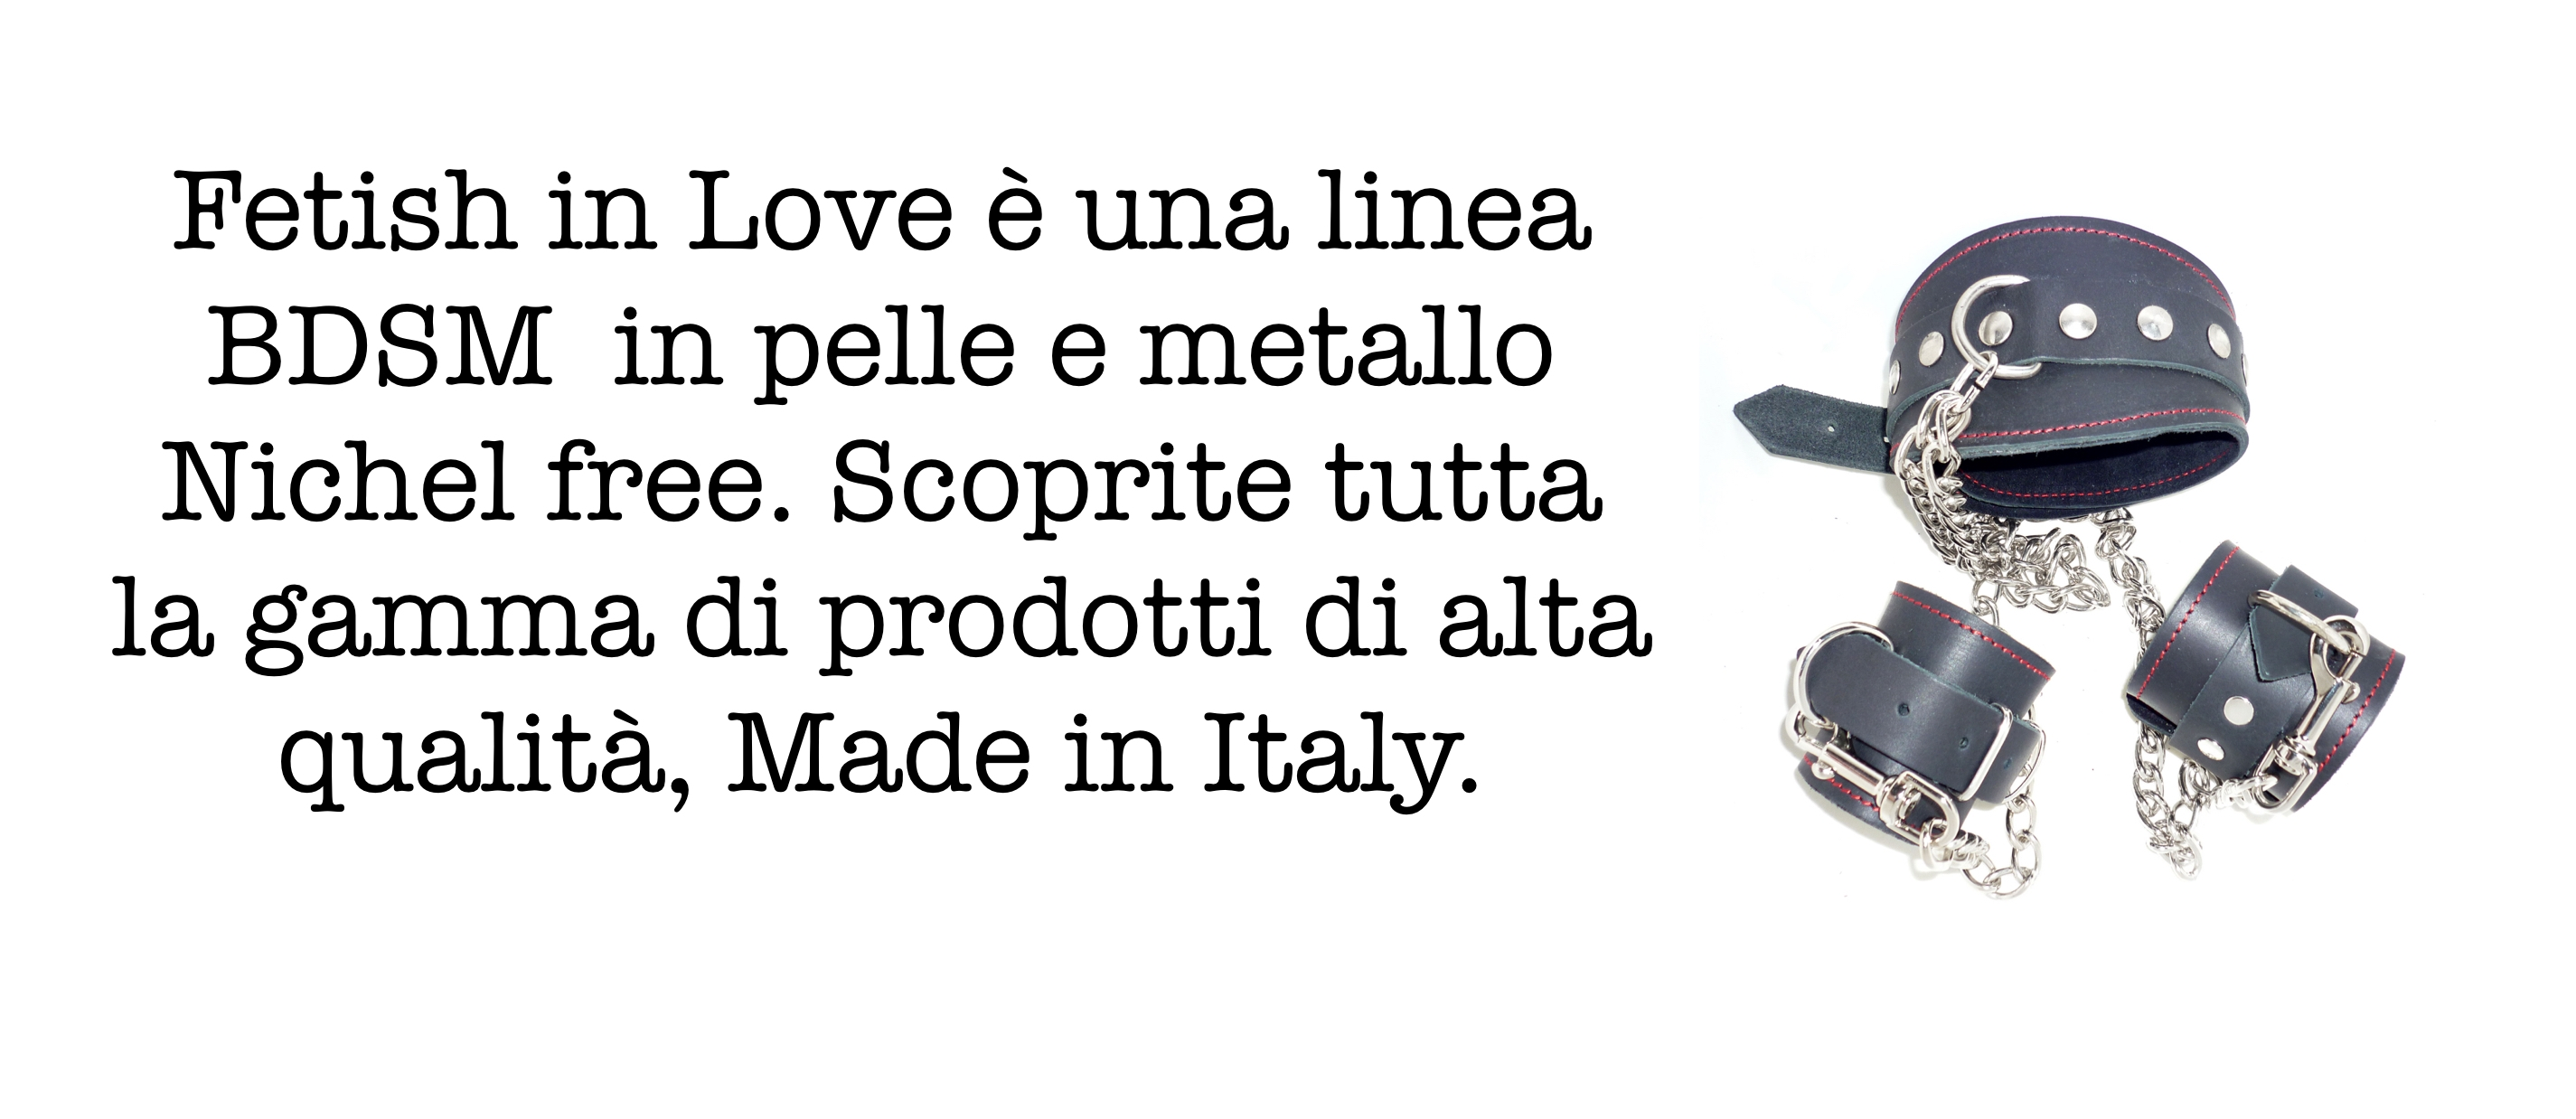 la pelle, made in Italy.